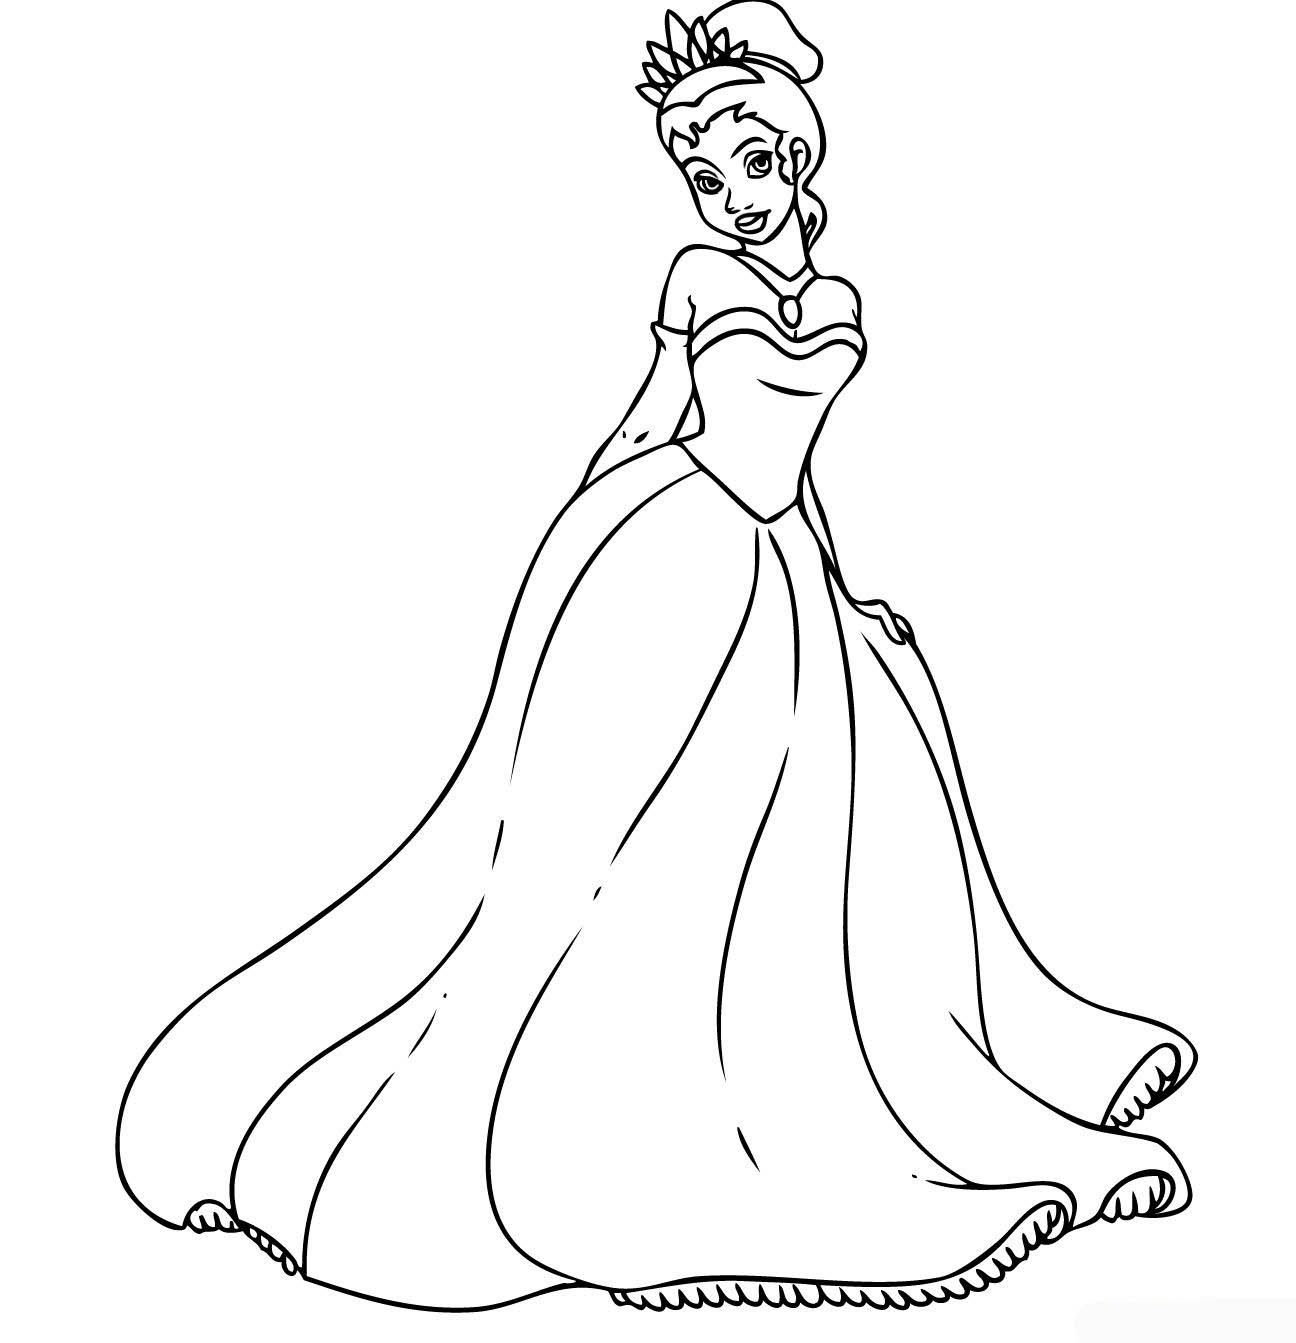 jasmine star email templates - disney princess tiana coloring pages to girls